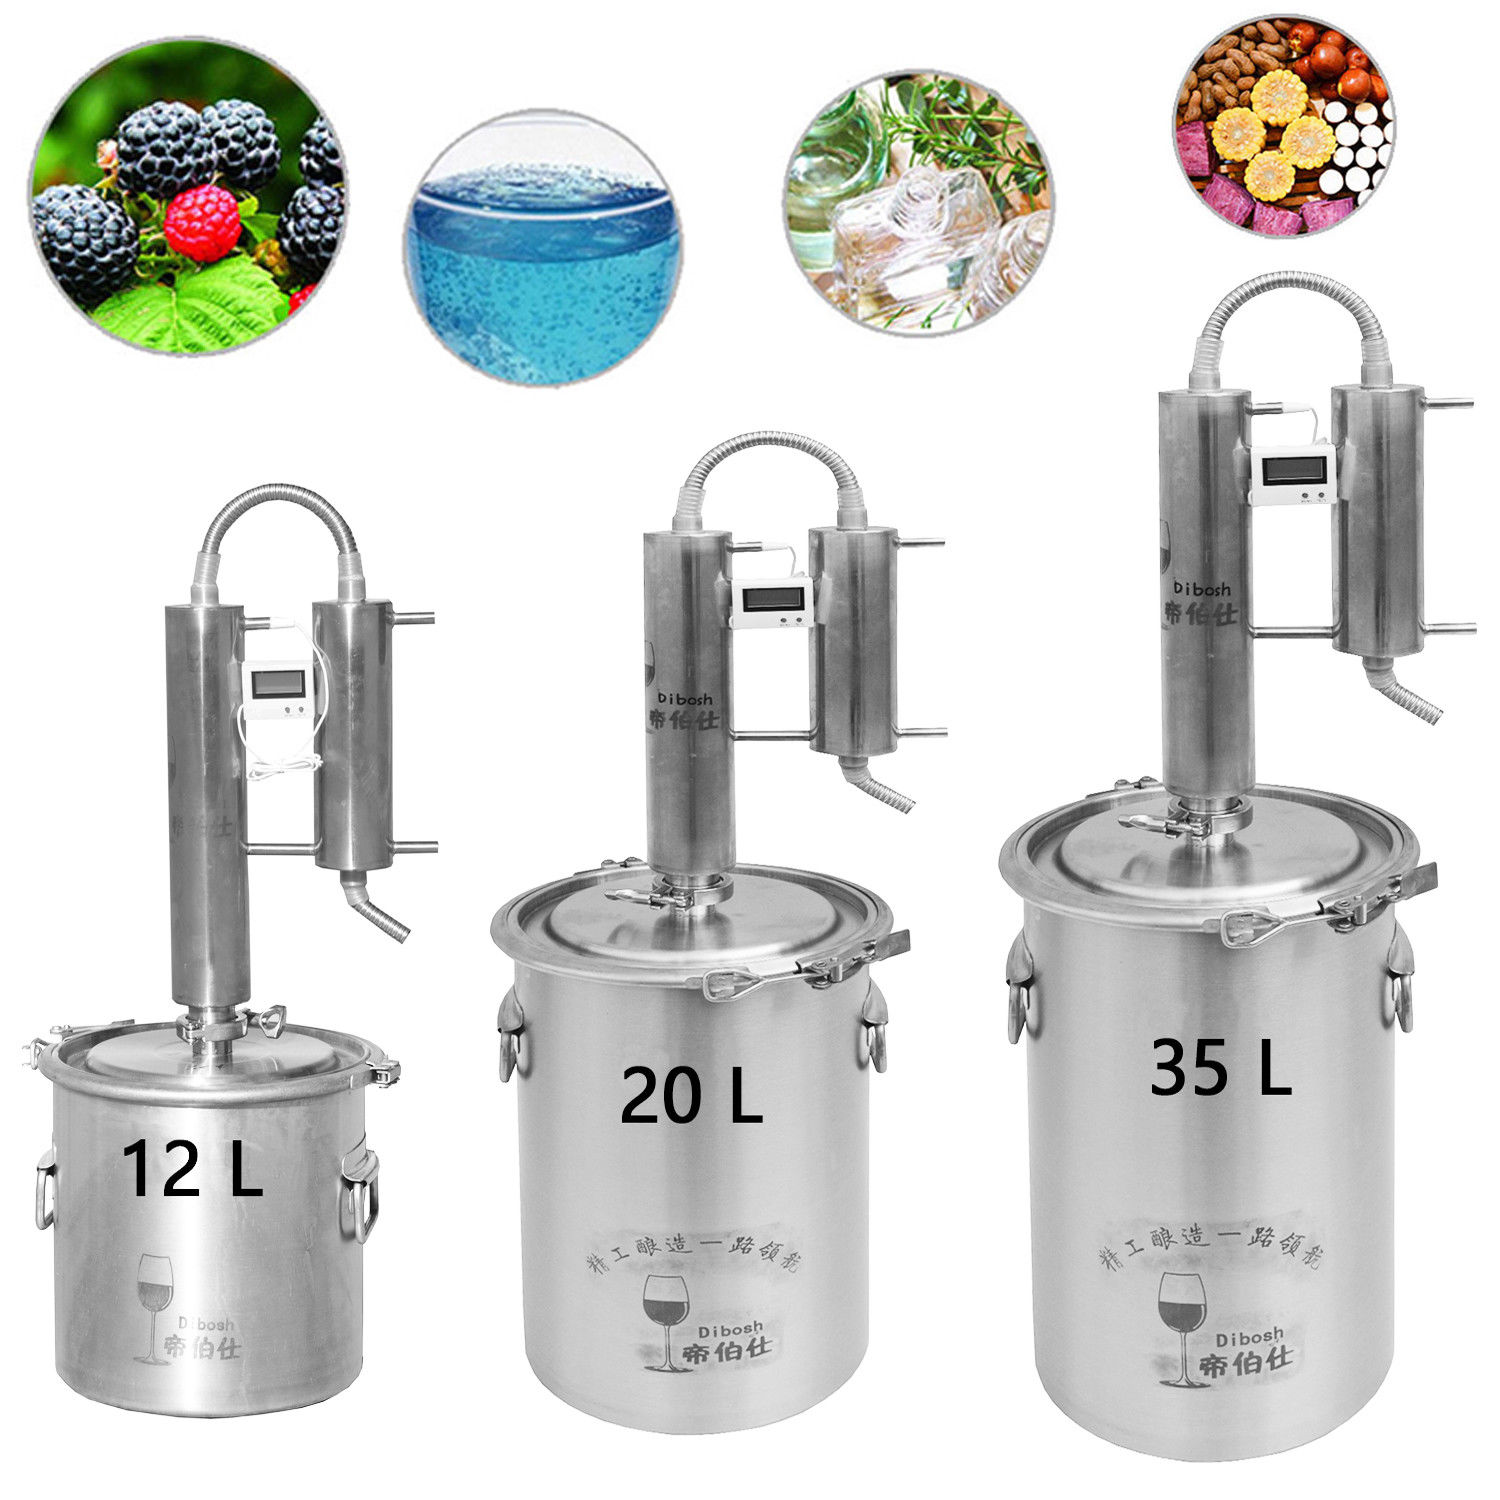 12L-35L New 304/316 Stainless Moonshine Still Water Distiller Alcohol Vodka White Spirit Brew Kits w/Thermometer Cooling Pipe